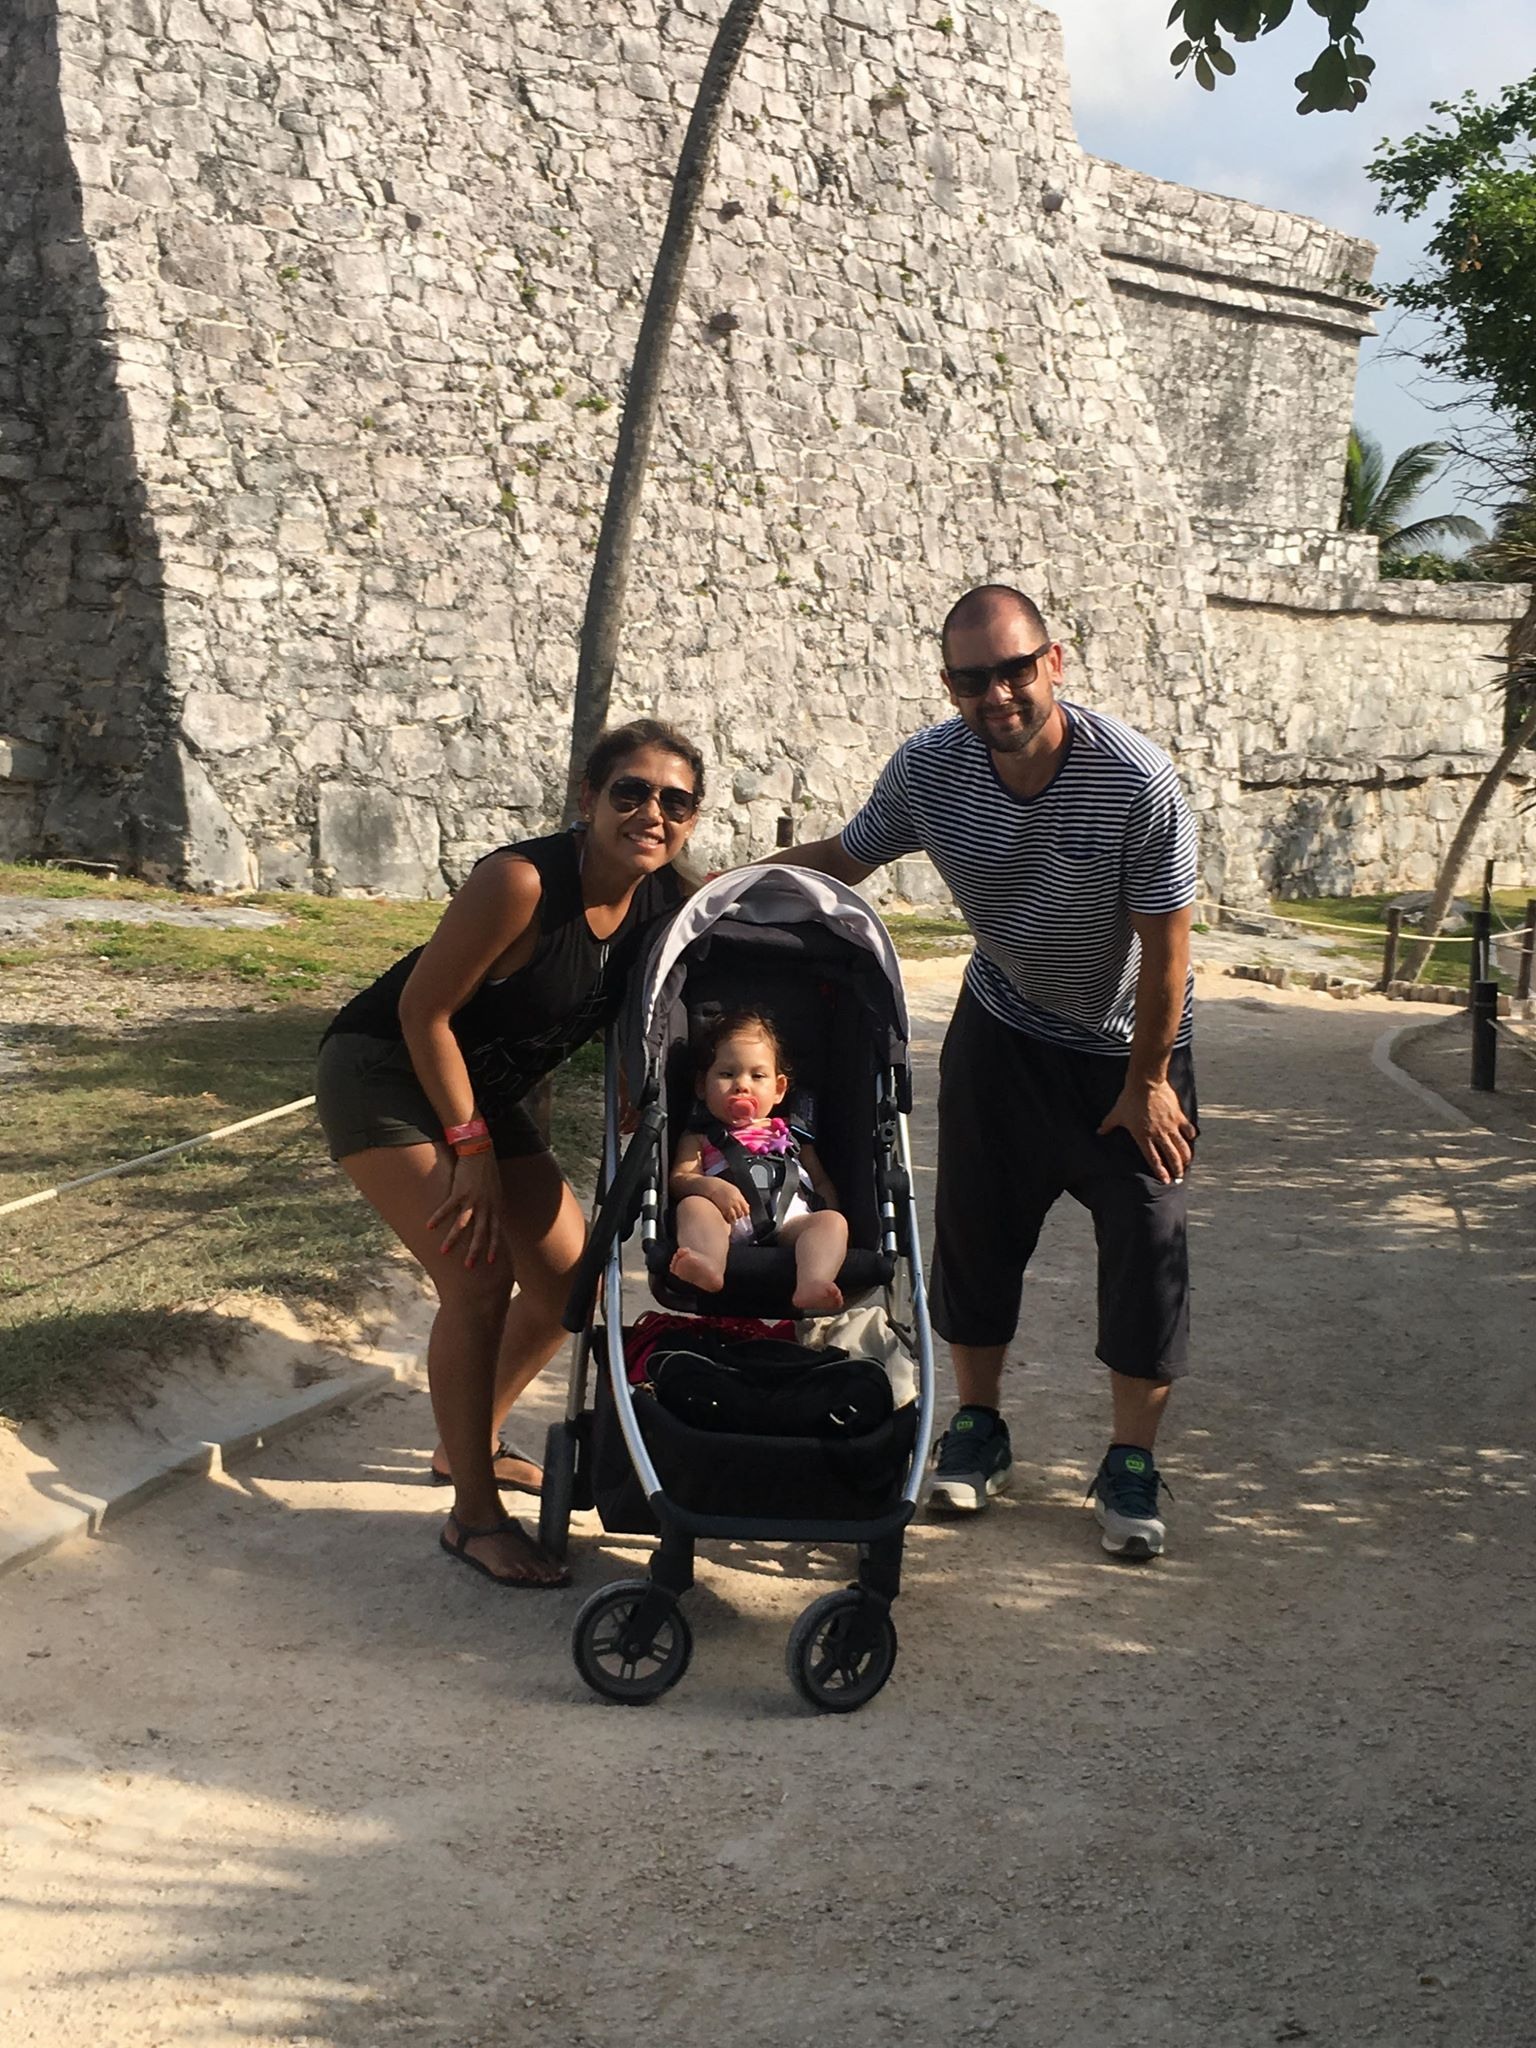 The Cano Family on vacation, in front of a landmark.